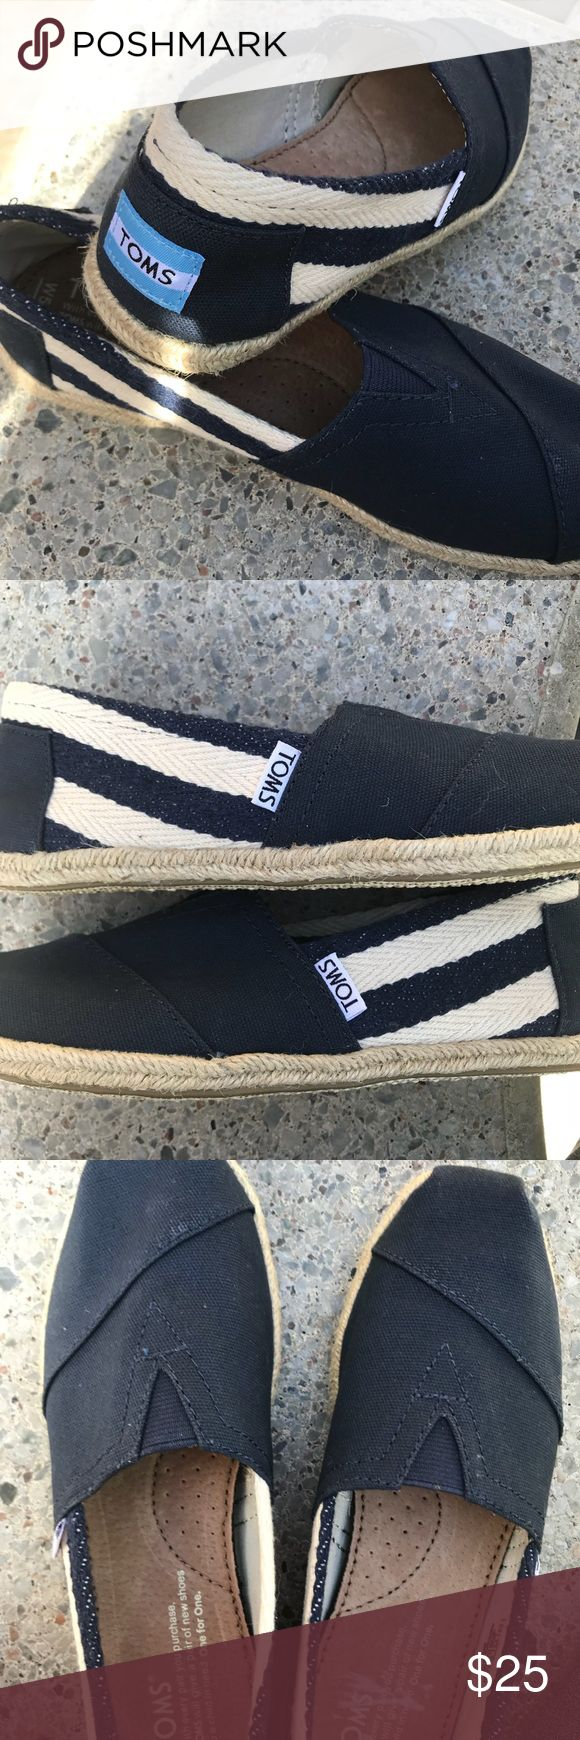 Toms espadrilles size 5.5 NWOB Toms espadrilles shoes flat shoes   NWOB it was sitting for long time so bit dusty but no sign of wear   There was sticker inside  it I couldn't get rid of every bit but it will come off maybe when it's wet or something but I didn't wanna do it Toms Shoes Espadrilles